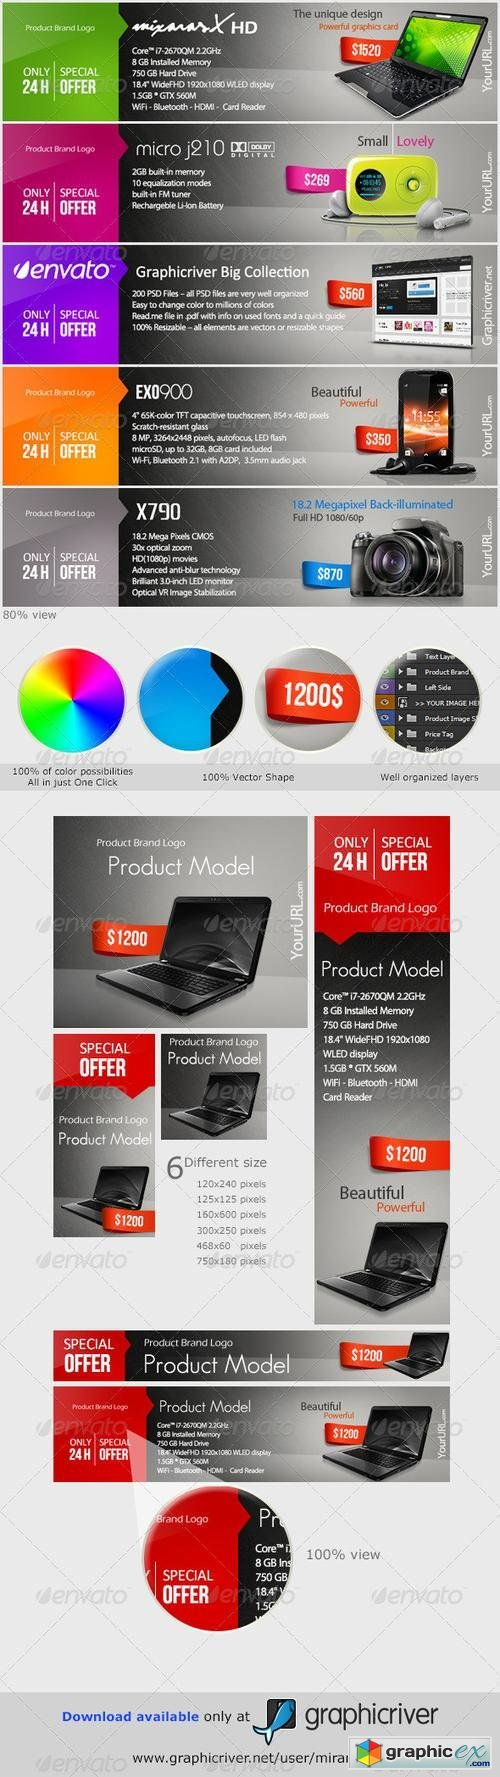 Web Marketing Banners & Advertise - PSD Templates 2772833